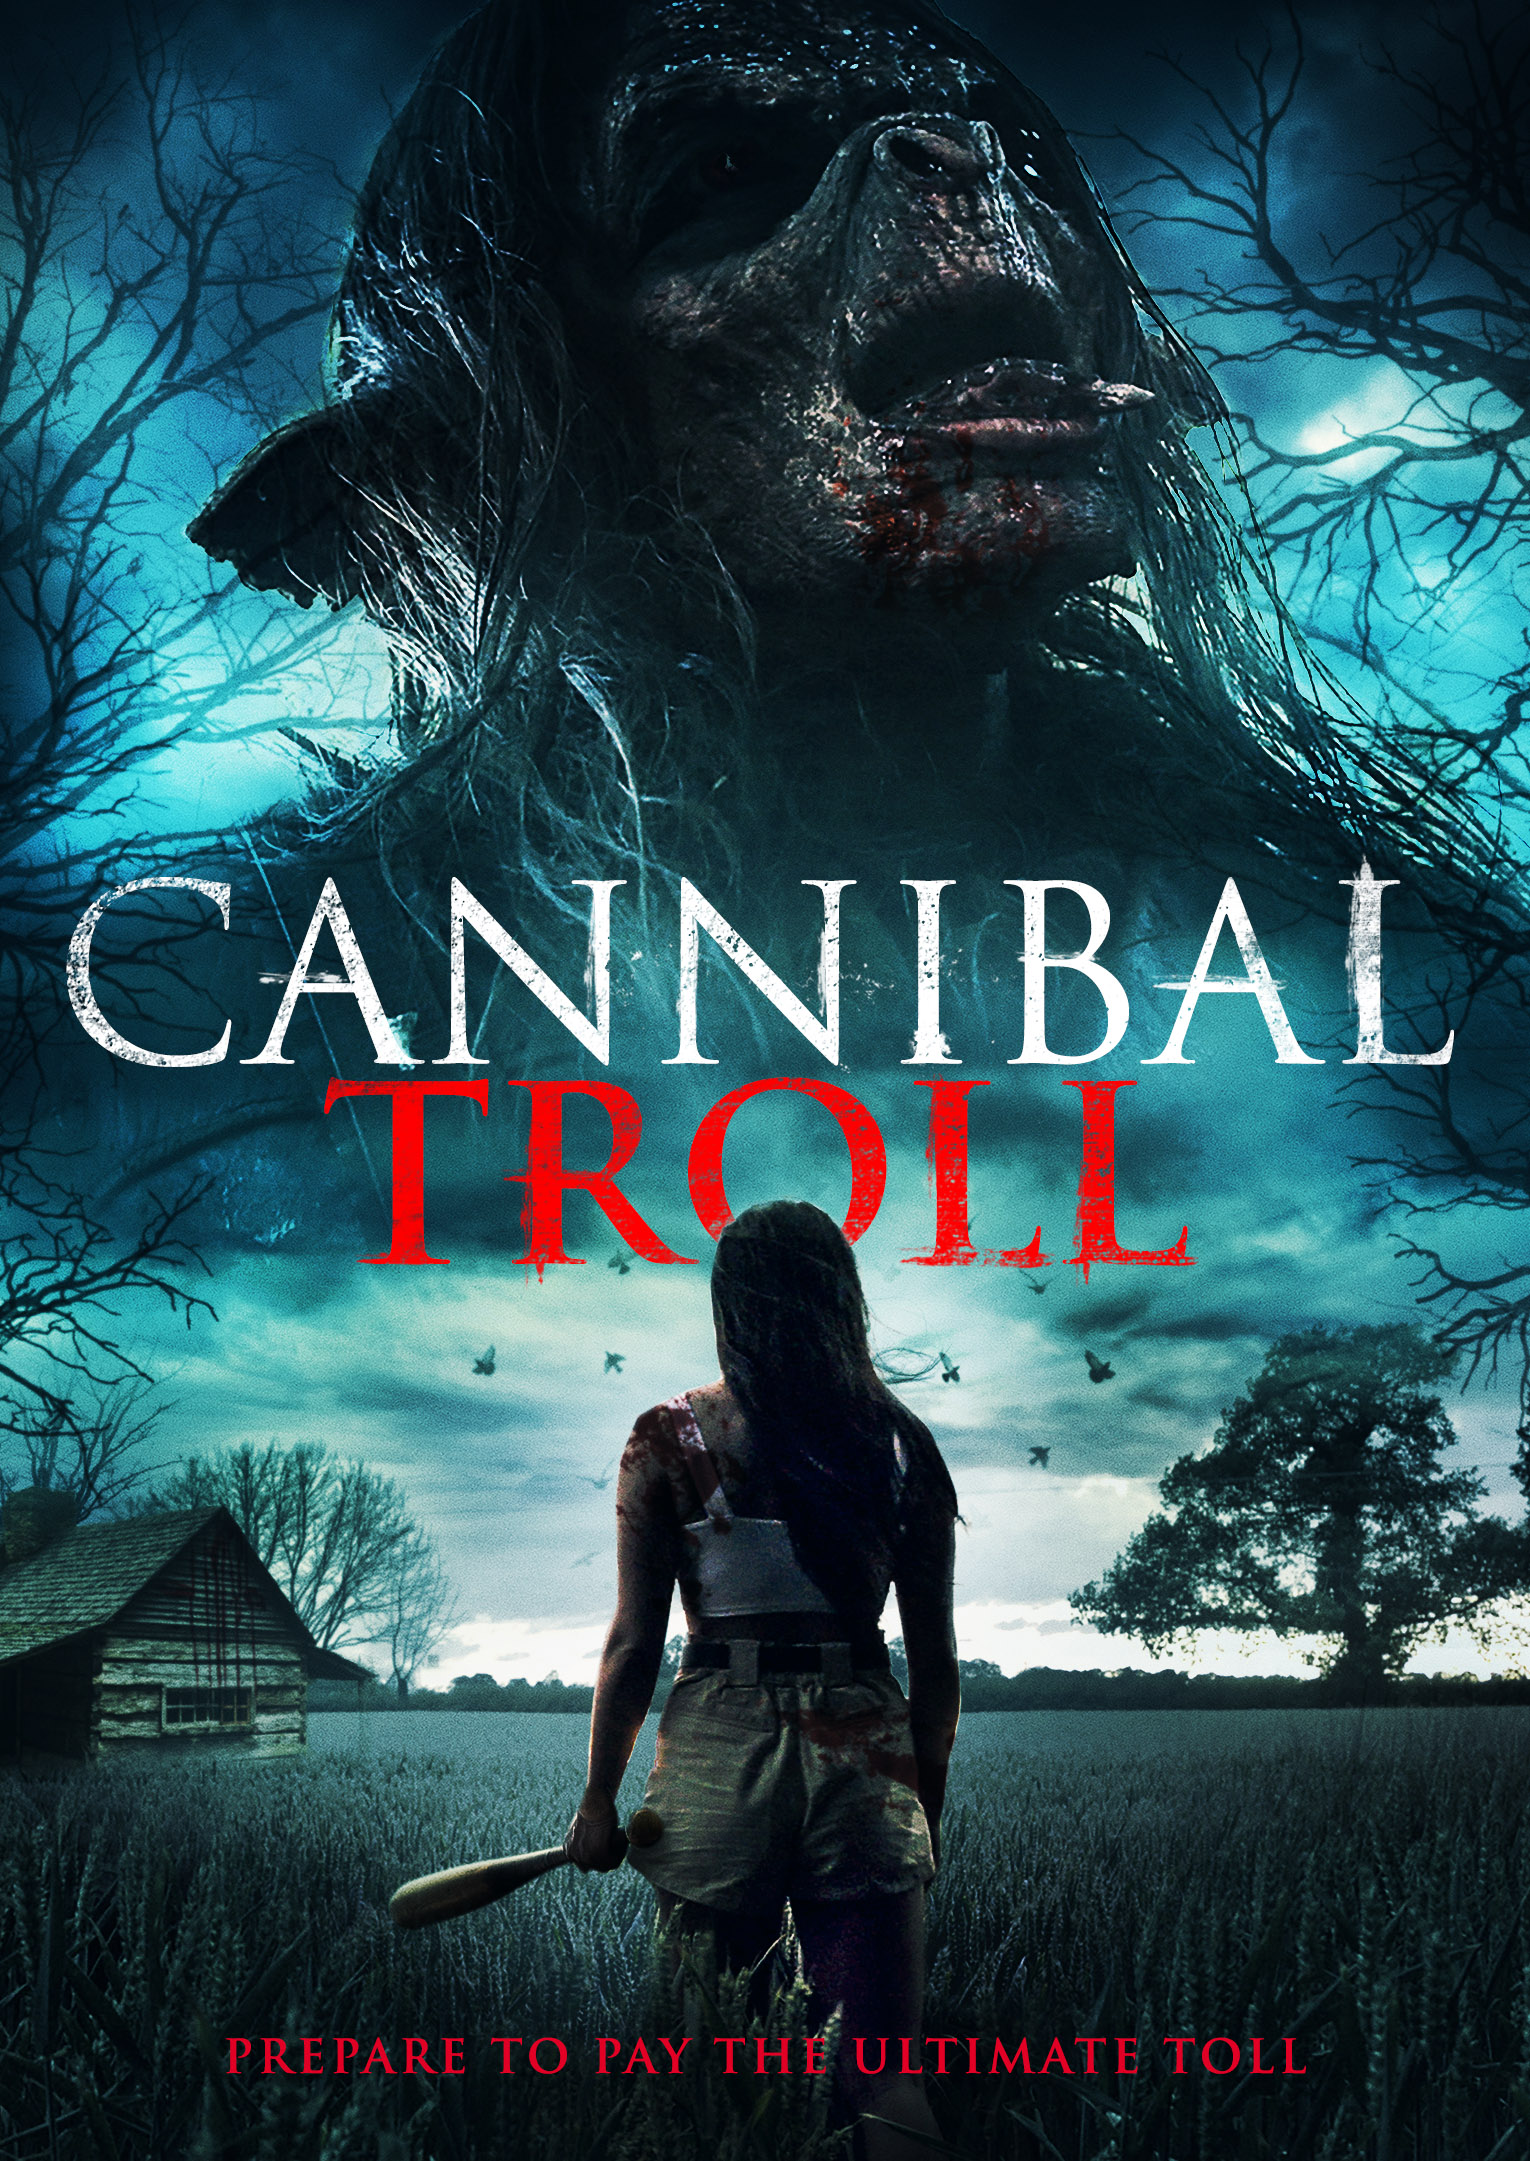 watch Cannibal Troll on soap2day